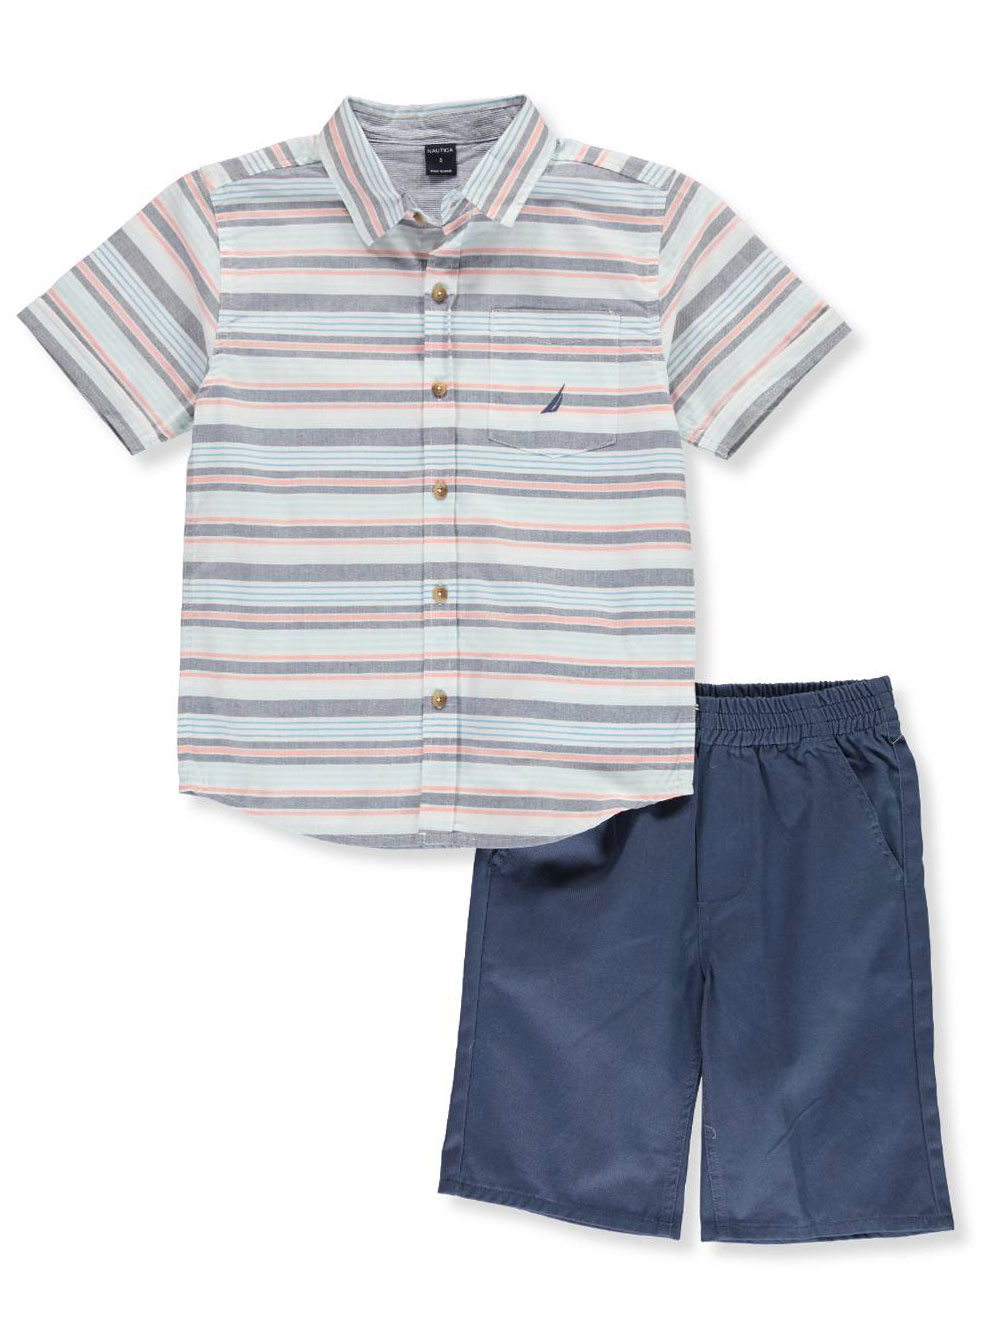 86ec62c49 Boys' 2-Piece Shorts Set Outfit by Nautica in Navy multi from Cookie's Kids